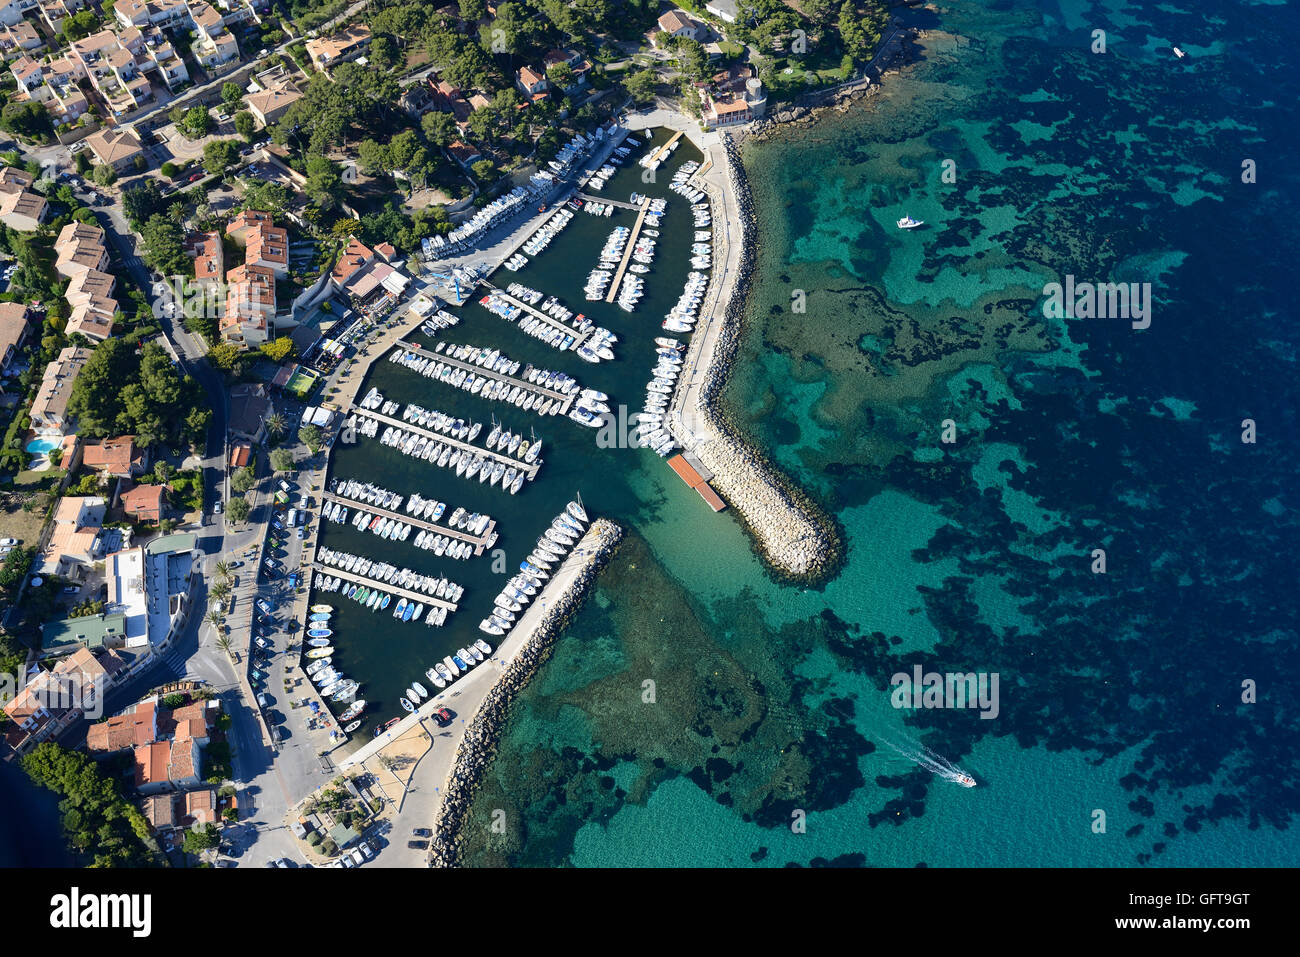 SMALL MARINA WITH COLORFUL SEABED (aerial view). La Madrague Marina, Saint-Cyr-sur-Mer, Var, Provence, France. - Stock Image